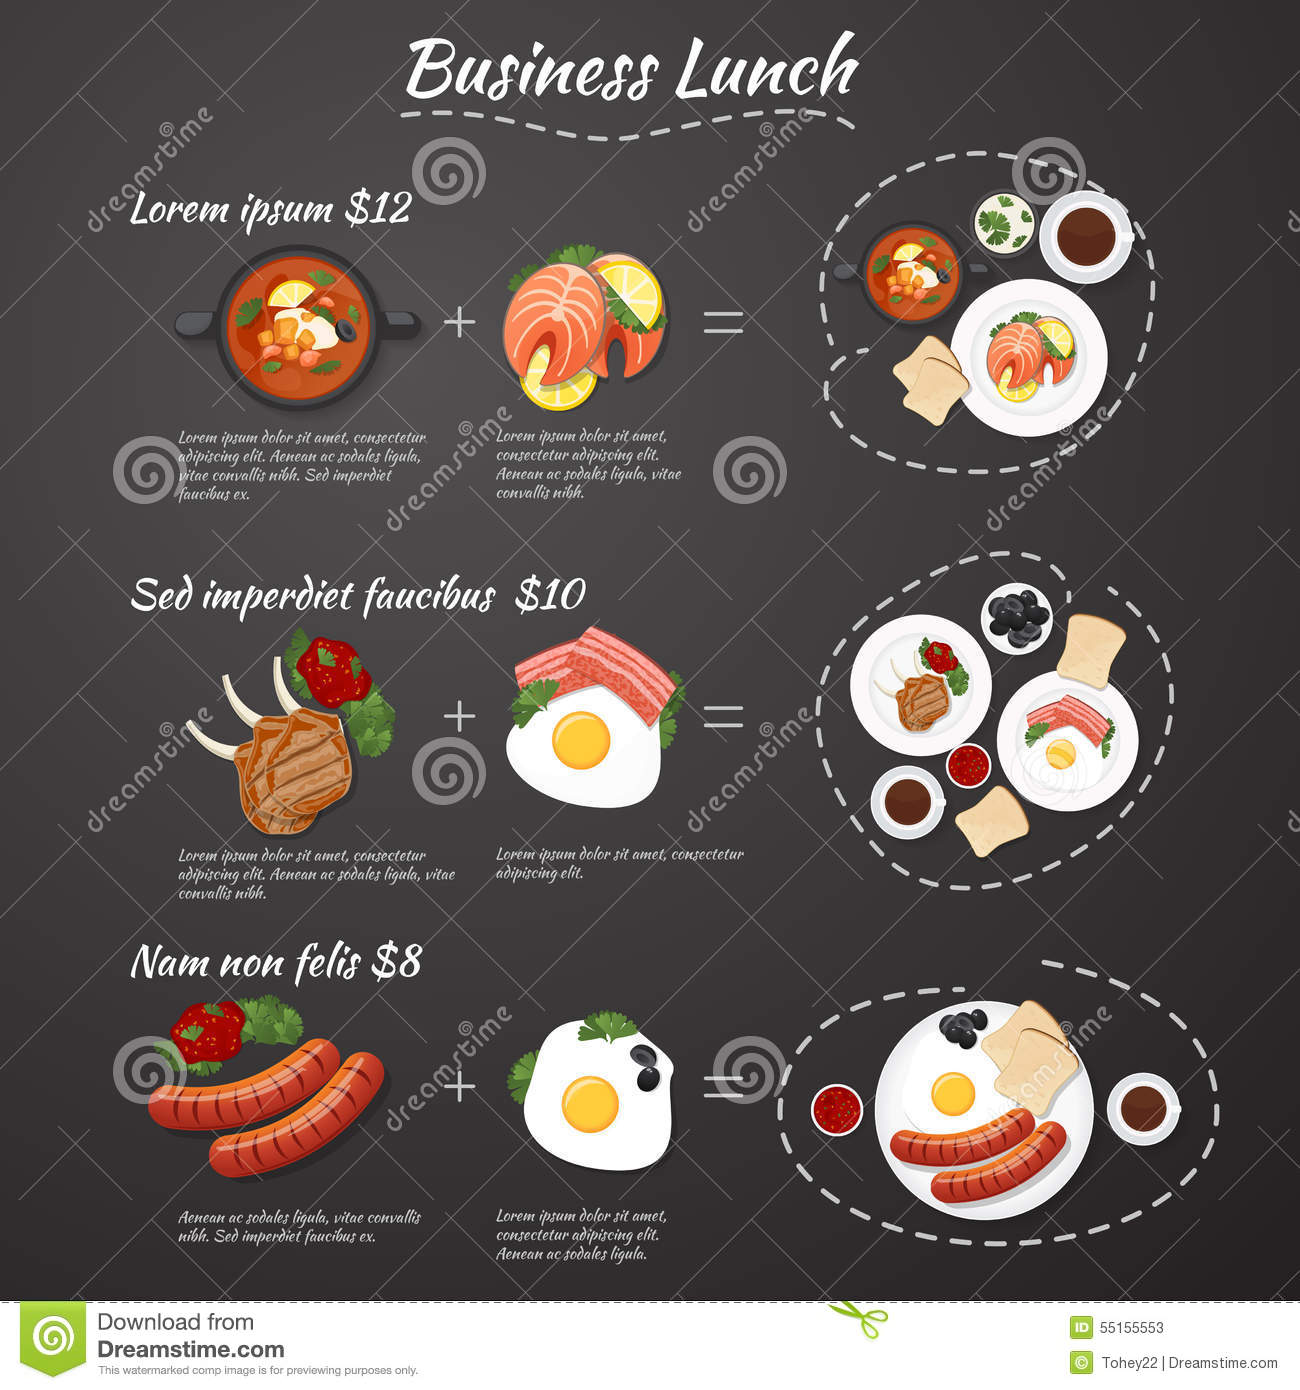 Business Lunch Menu Template Photos Image 22090773 – Lunch Menu Template